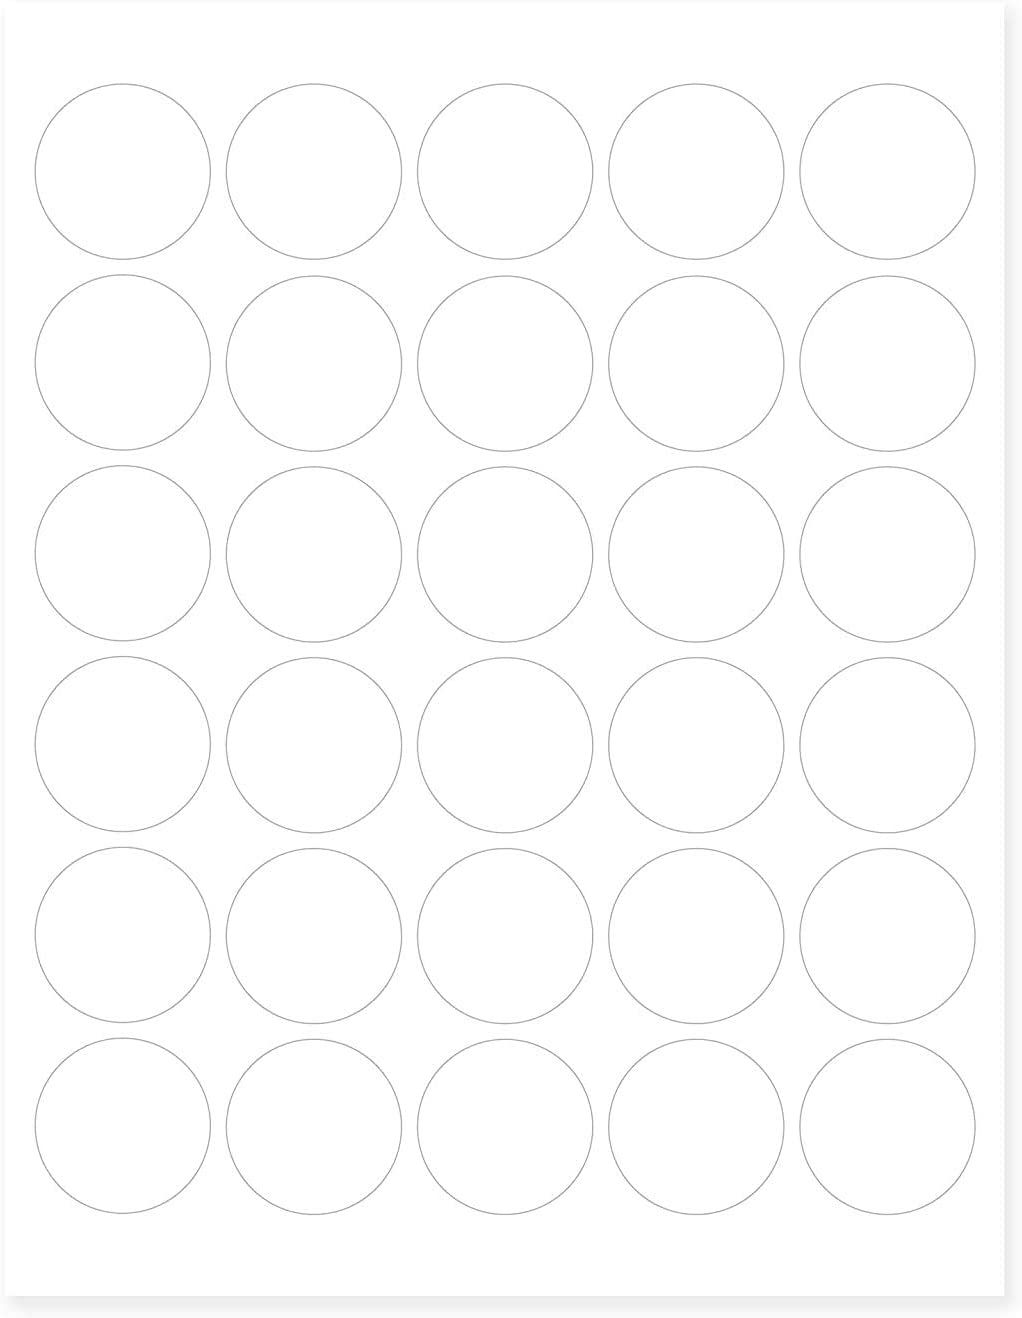 Mr-Label –Matte Frosted Clear Round Seal Label – Inkjet and Laser Print – US Letter Sheet Size –Waterproof See-Through Stickers – for Food Package | Bottle | Jar | Envelope (10)